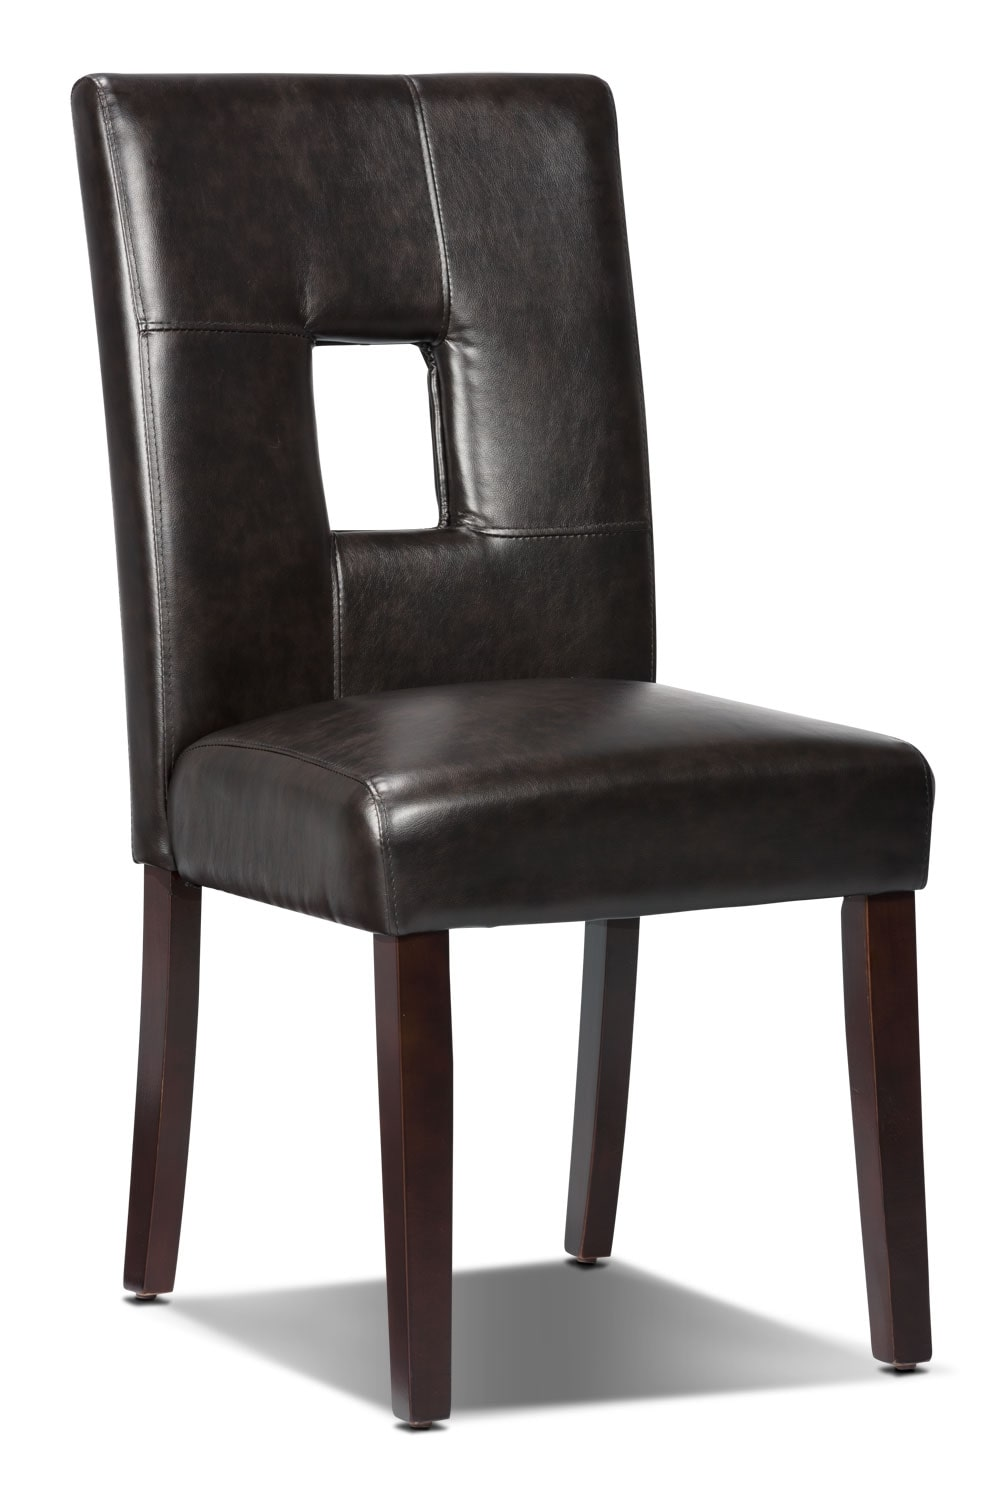 Mckena faux leather dining chair brown the brick for Brown leather dining chairs